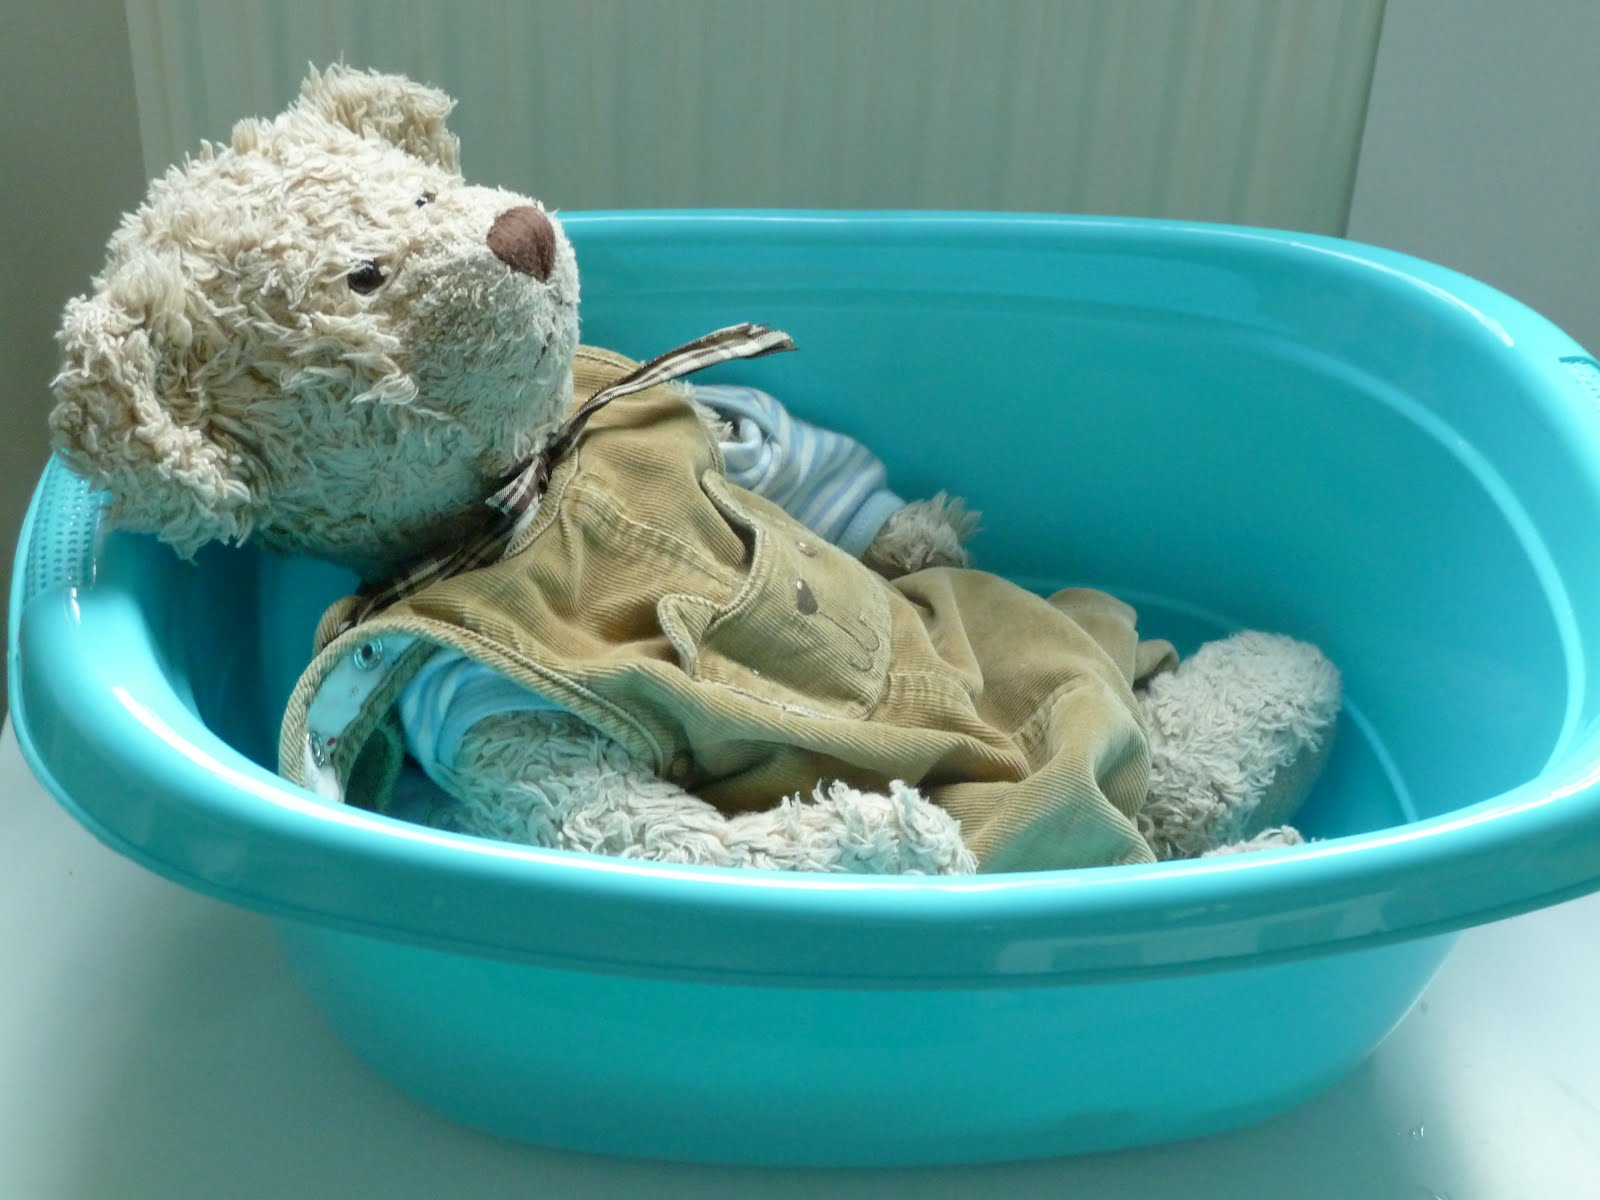 Bathing Baby Teddy-Bear (Photo from Elaine Ng Friis)